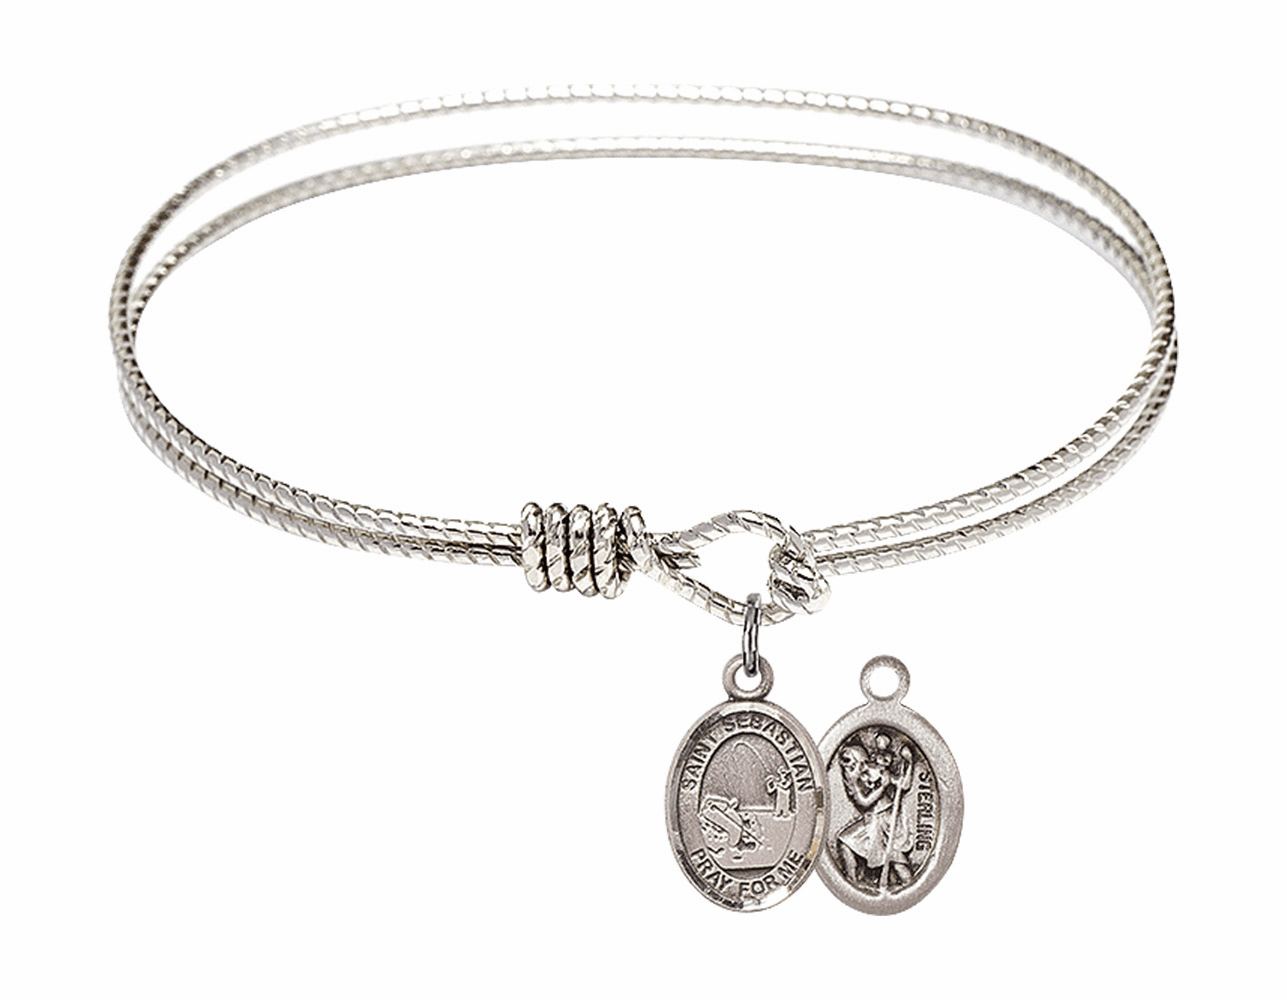 Twist Round Eye Hook St Sebastian Fishing Bangle Charm Bracelet by Bliss